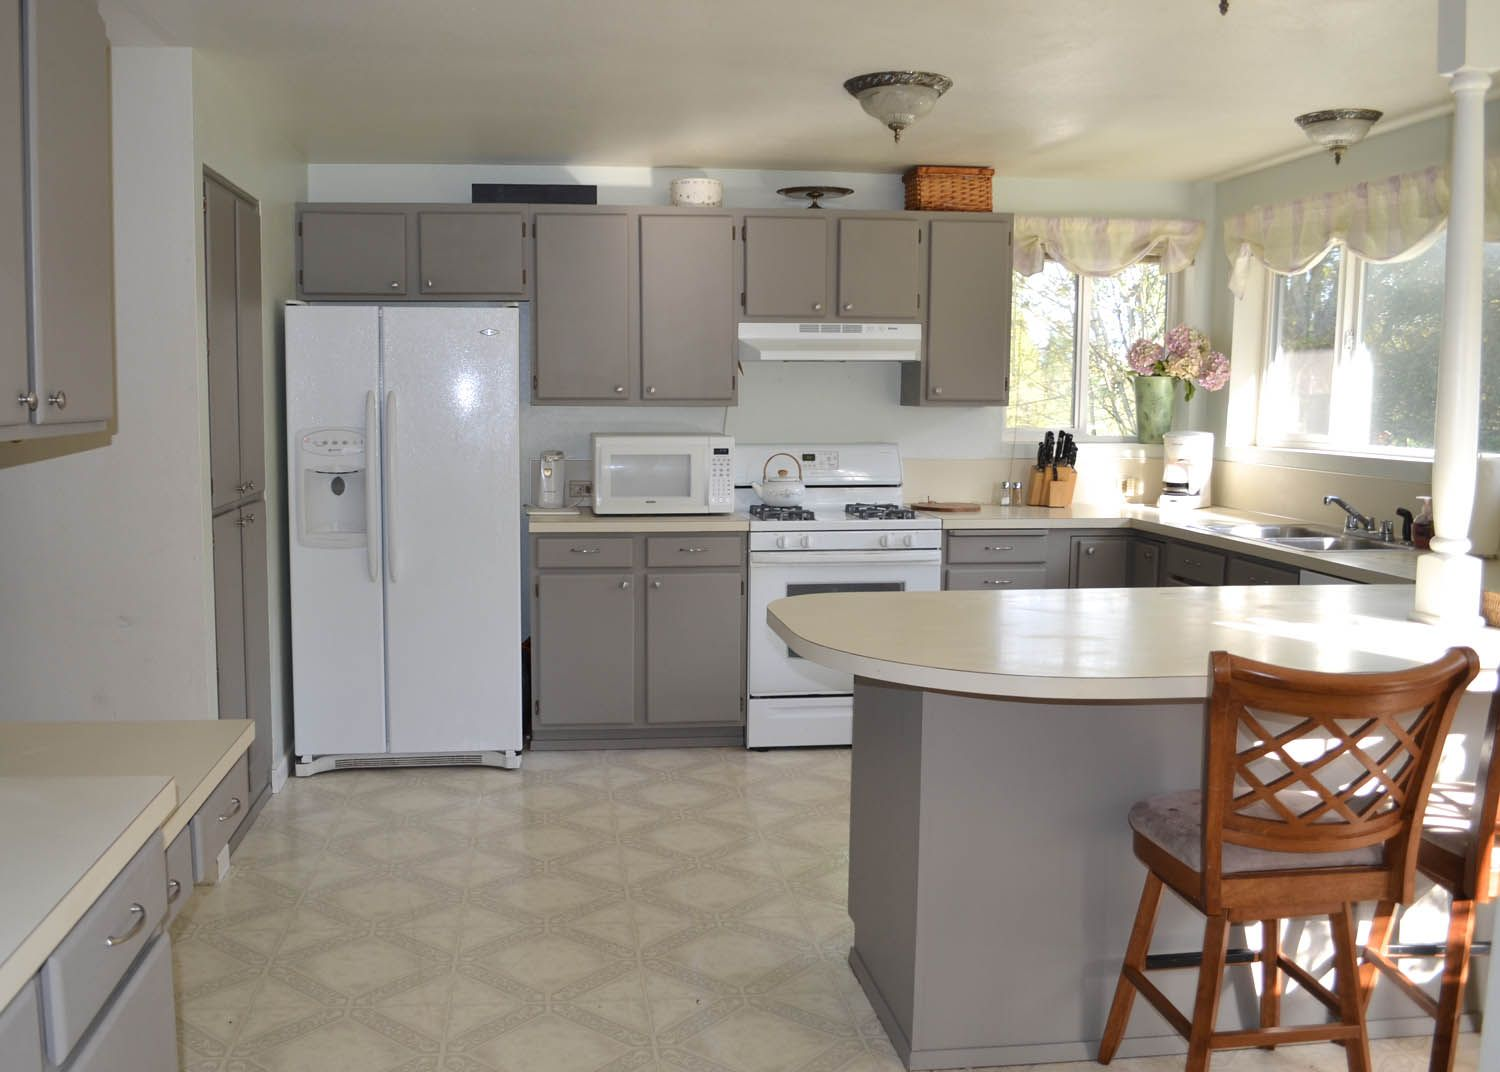 Kitchen Cabinet Paint Colors Pictures Repainting Kitchen Cabinets Painting Kitchen Cabinets Kitchen Cabinets